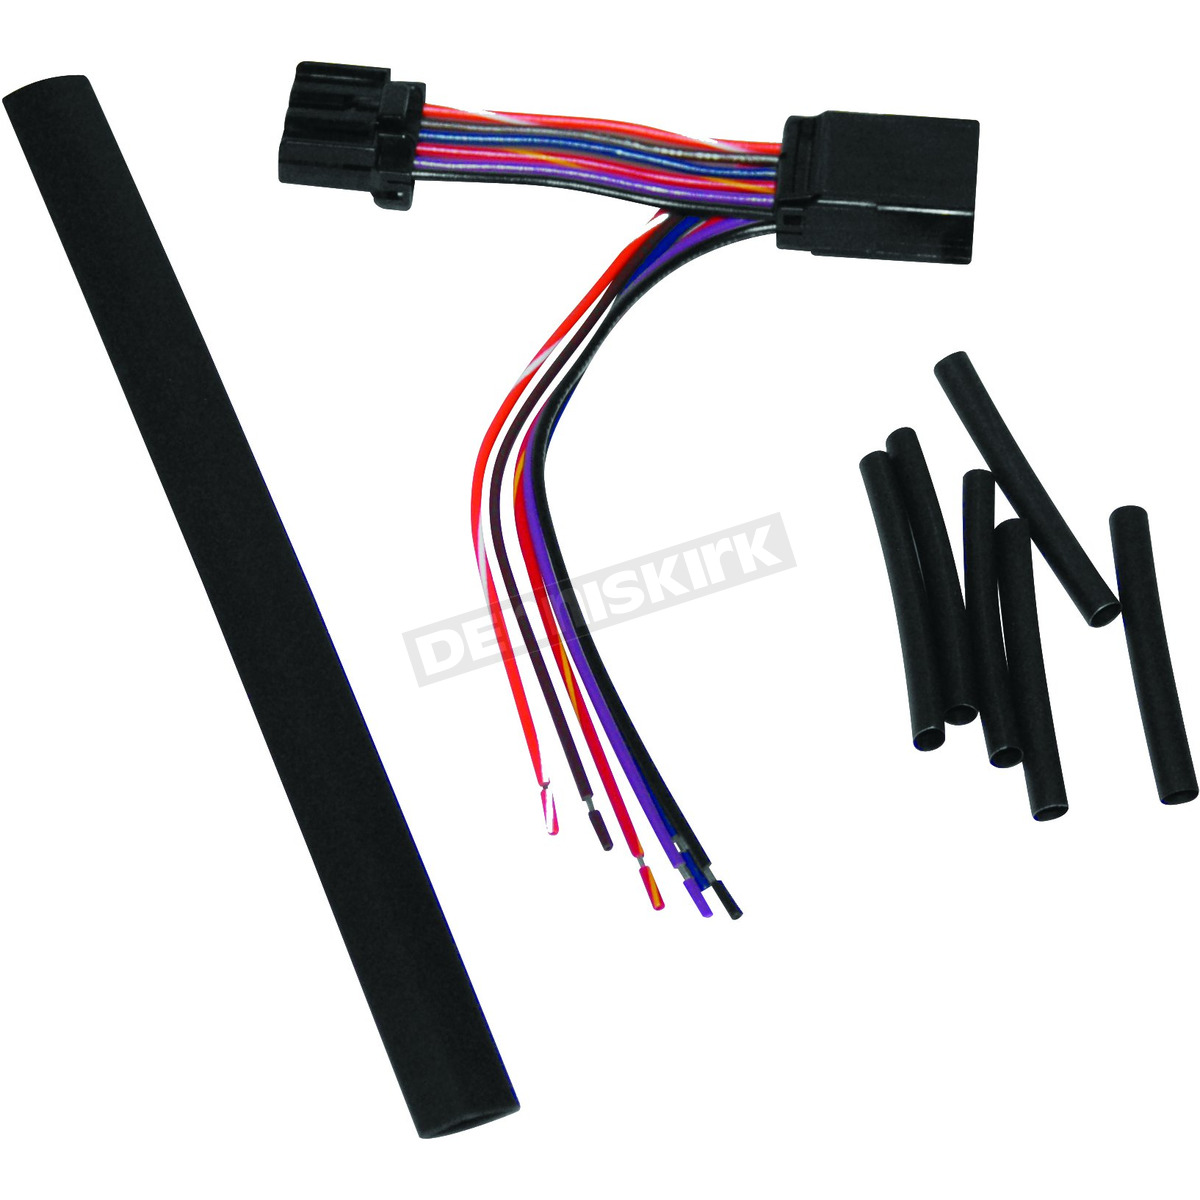 Rear Fender Tap Harness - LLC-RBTH-02 on harley davidson wire connectors, bmw wire harness, harley davidson radio harness, harley davidson wire colors, club car wire harness, mercury marine wire harness,